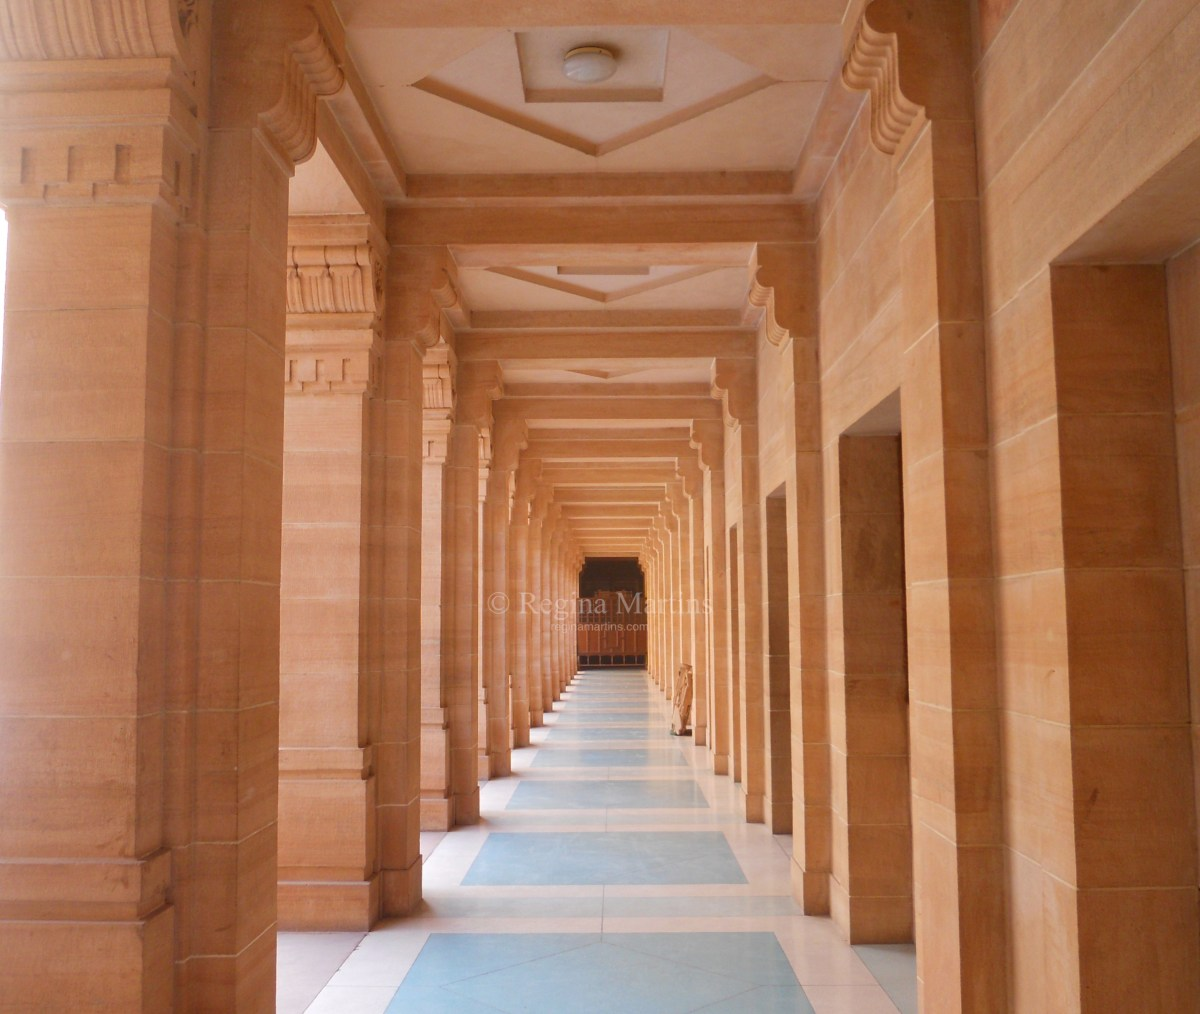 Wordpress Weekly Photo: Symmetry - India